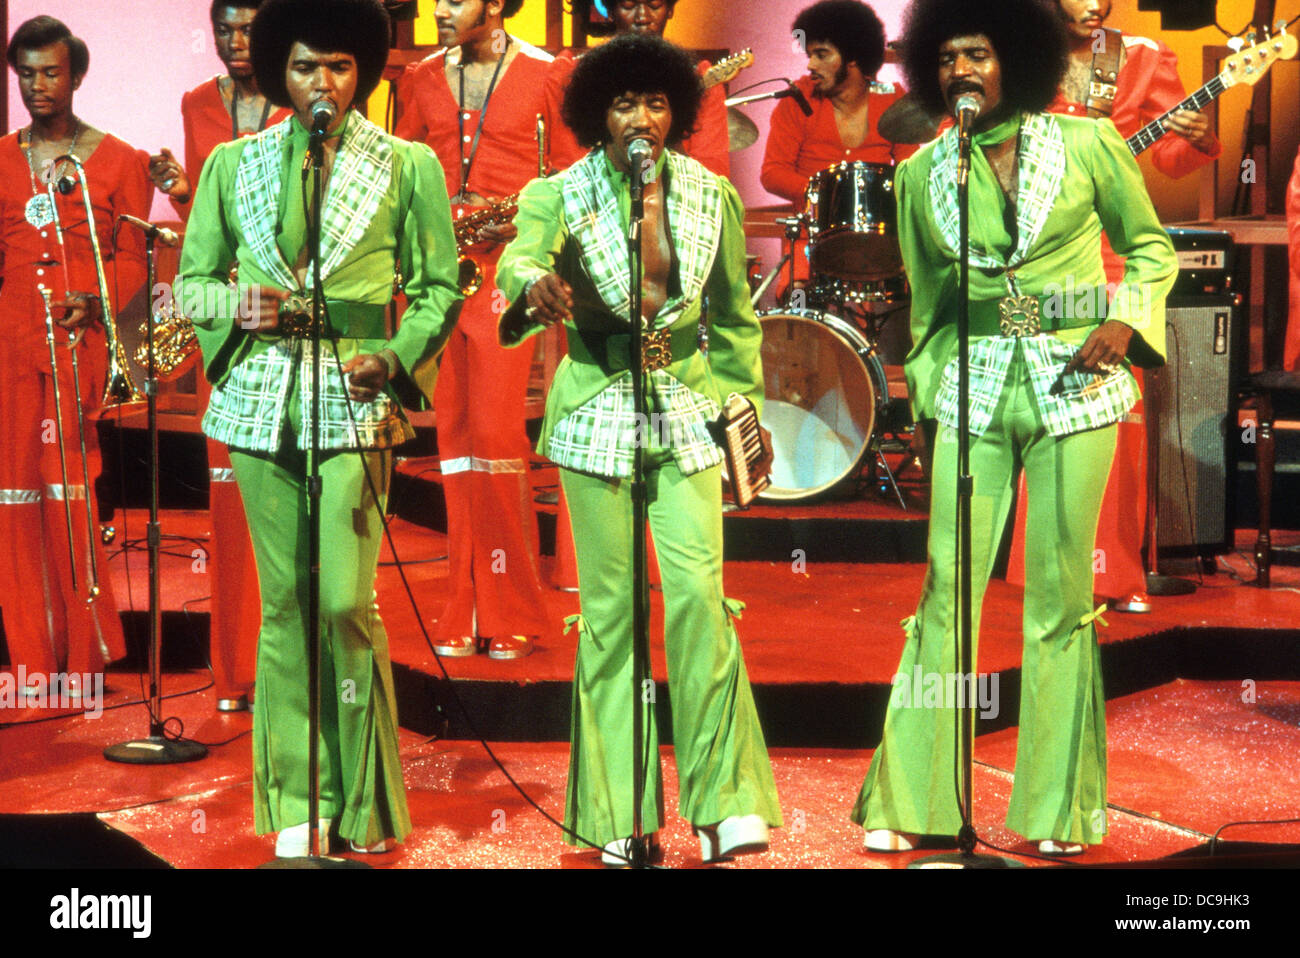 CHI-LITES American vocal trio about 1972 - Stock Image